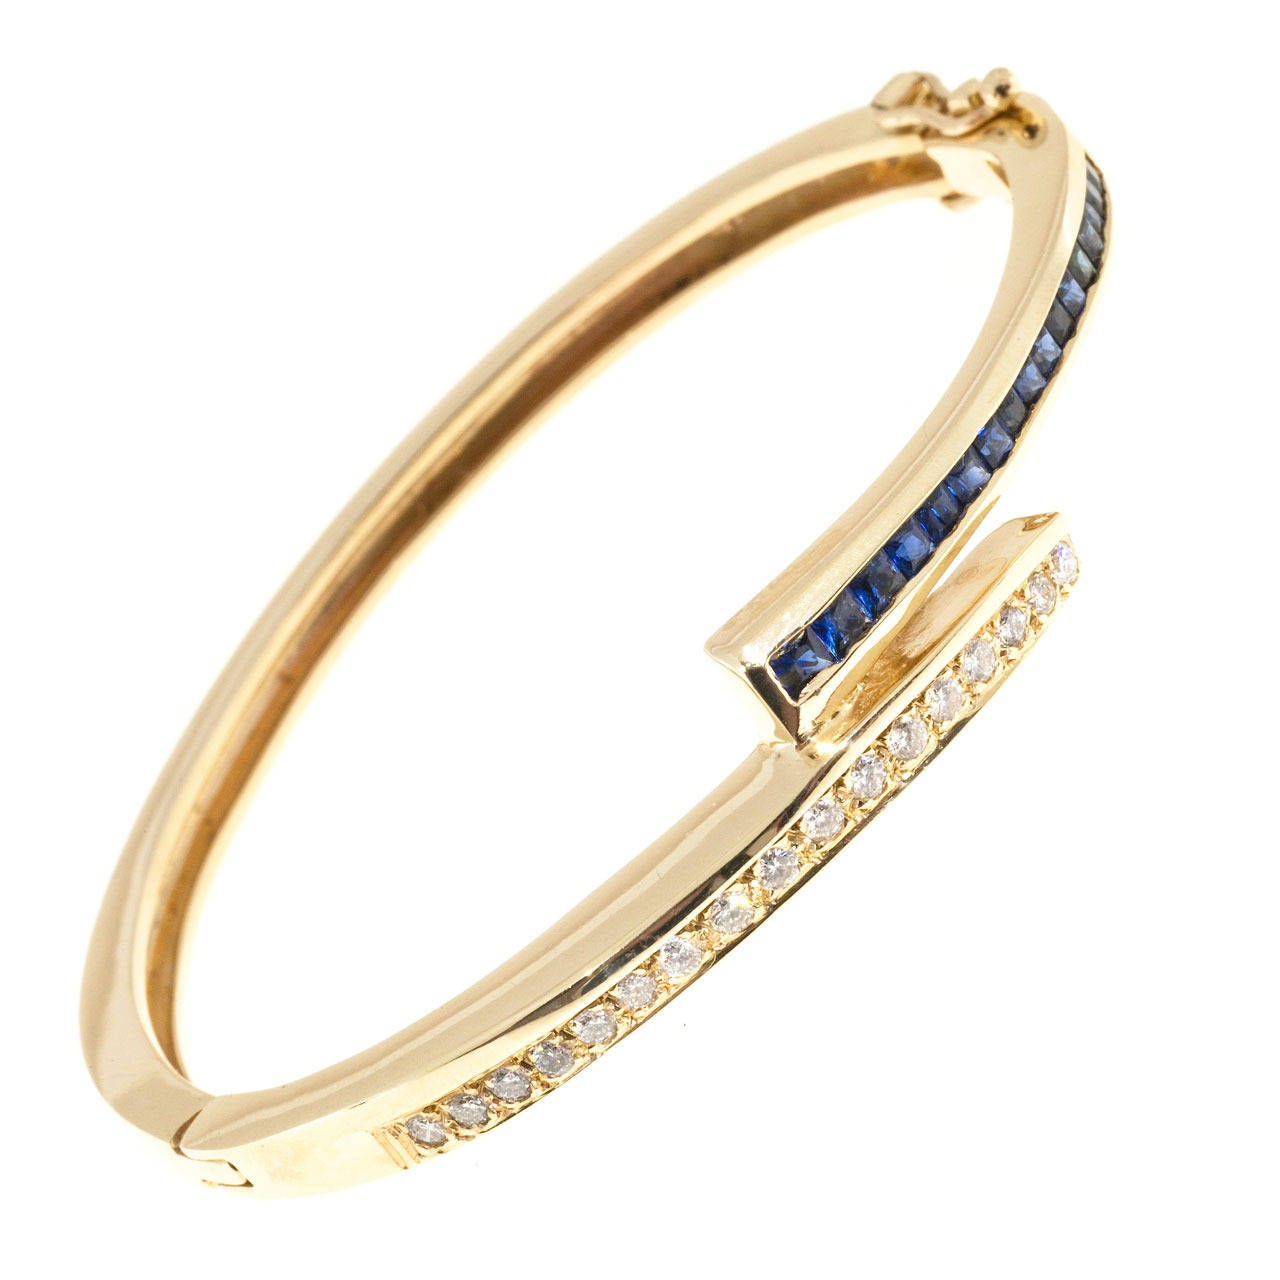 Gold diamond bangle bracelet